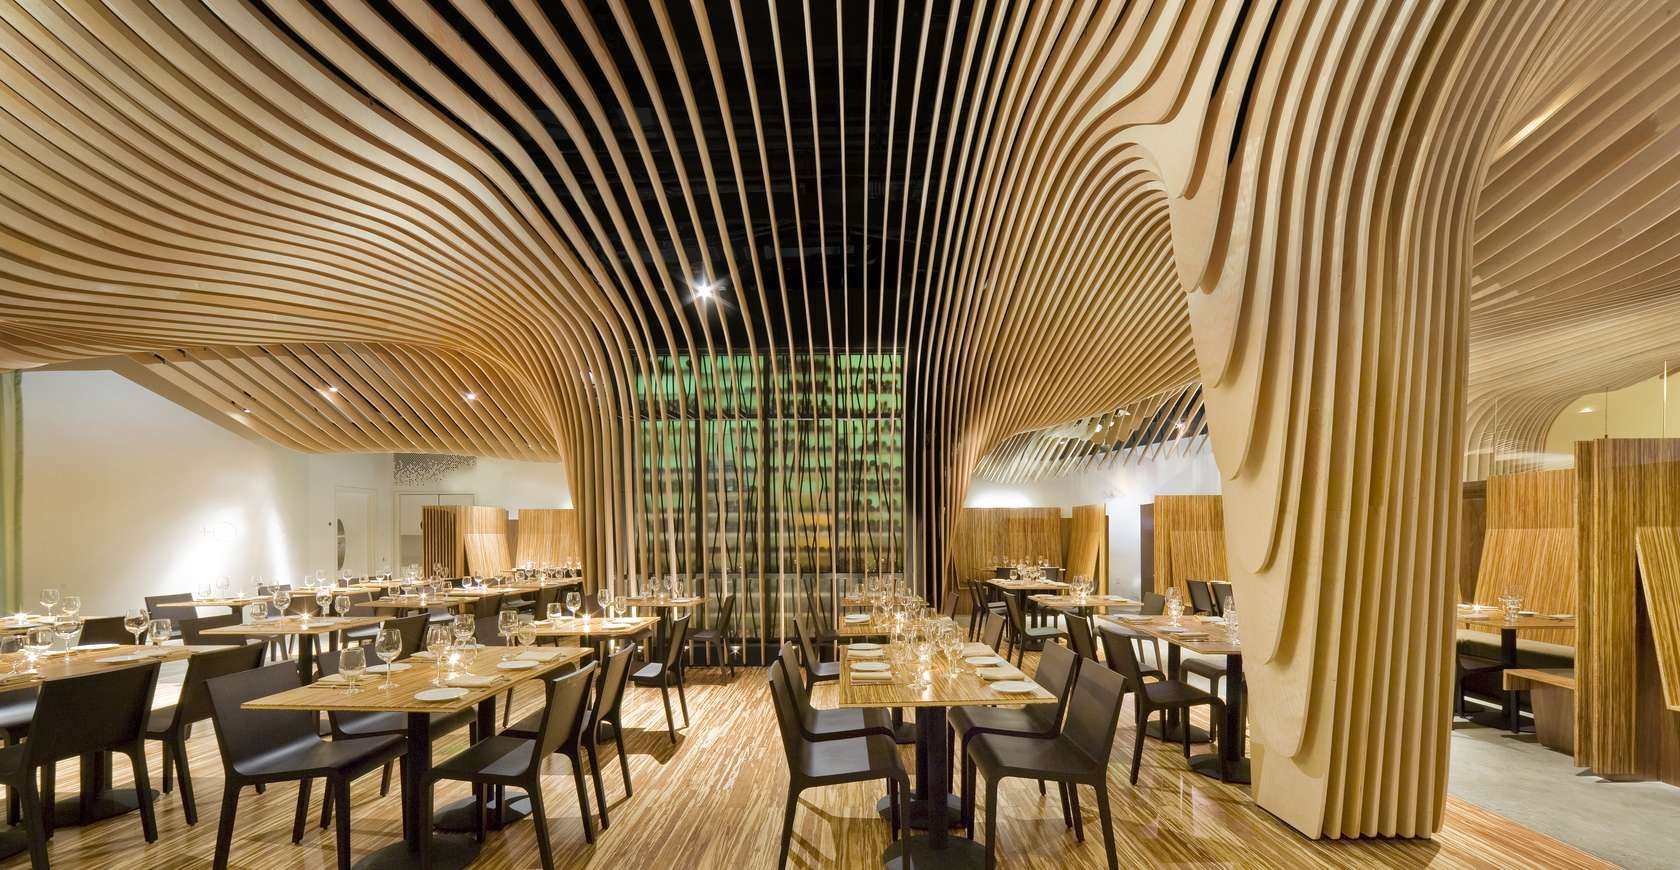 Banq restaurant dining area